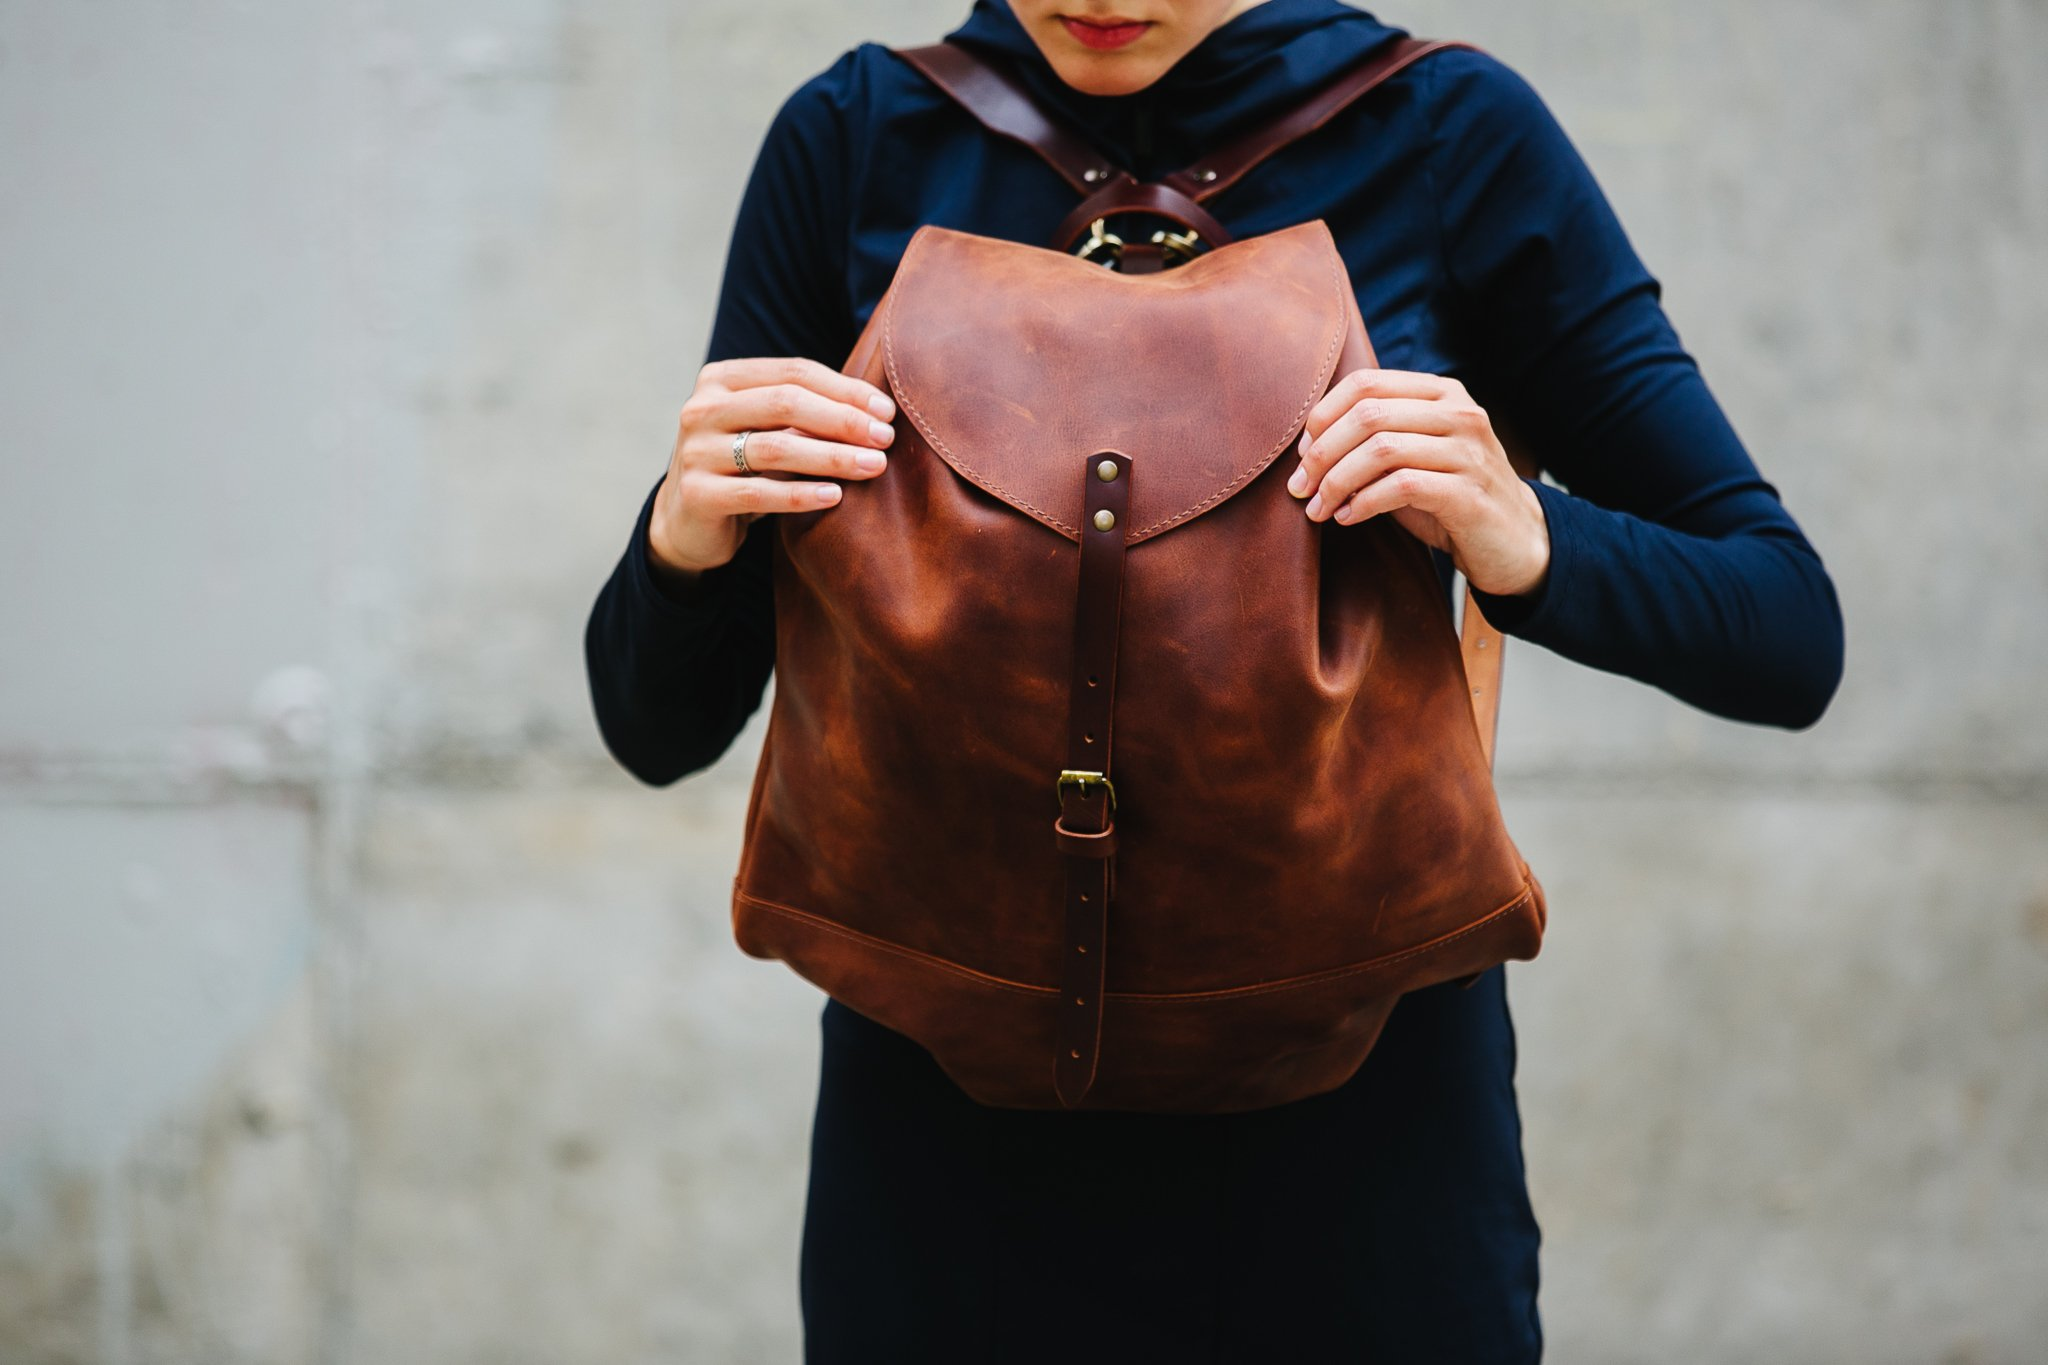 Leather backpack Woman backpack Ladies backpack Women's daily pack Cognac brown leather backpack Small backpack Women's gift